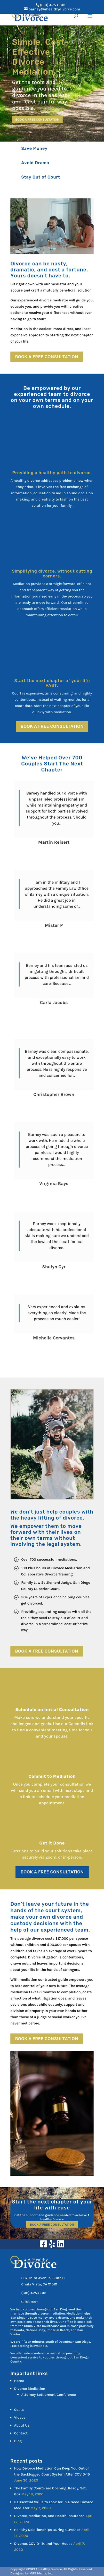 Barney Connaughton - Divorce Mediator - Chula Vista CA Lawyers